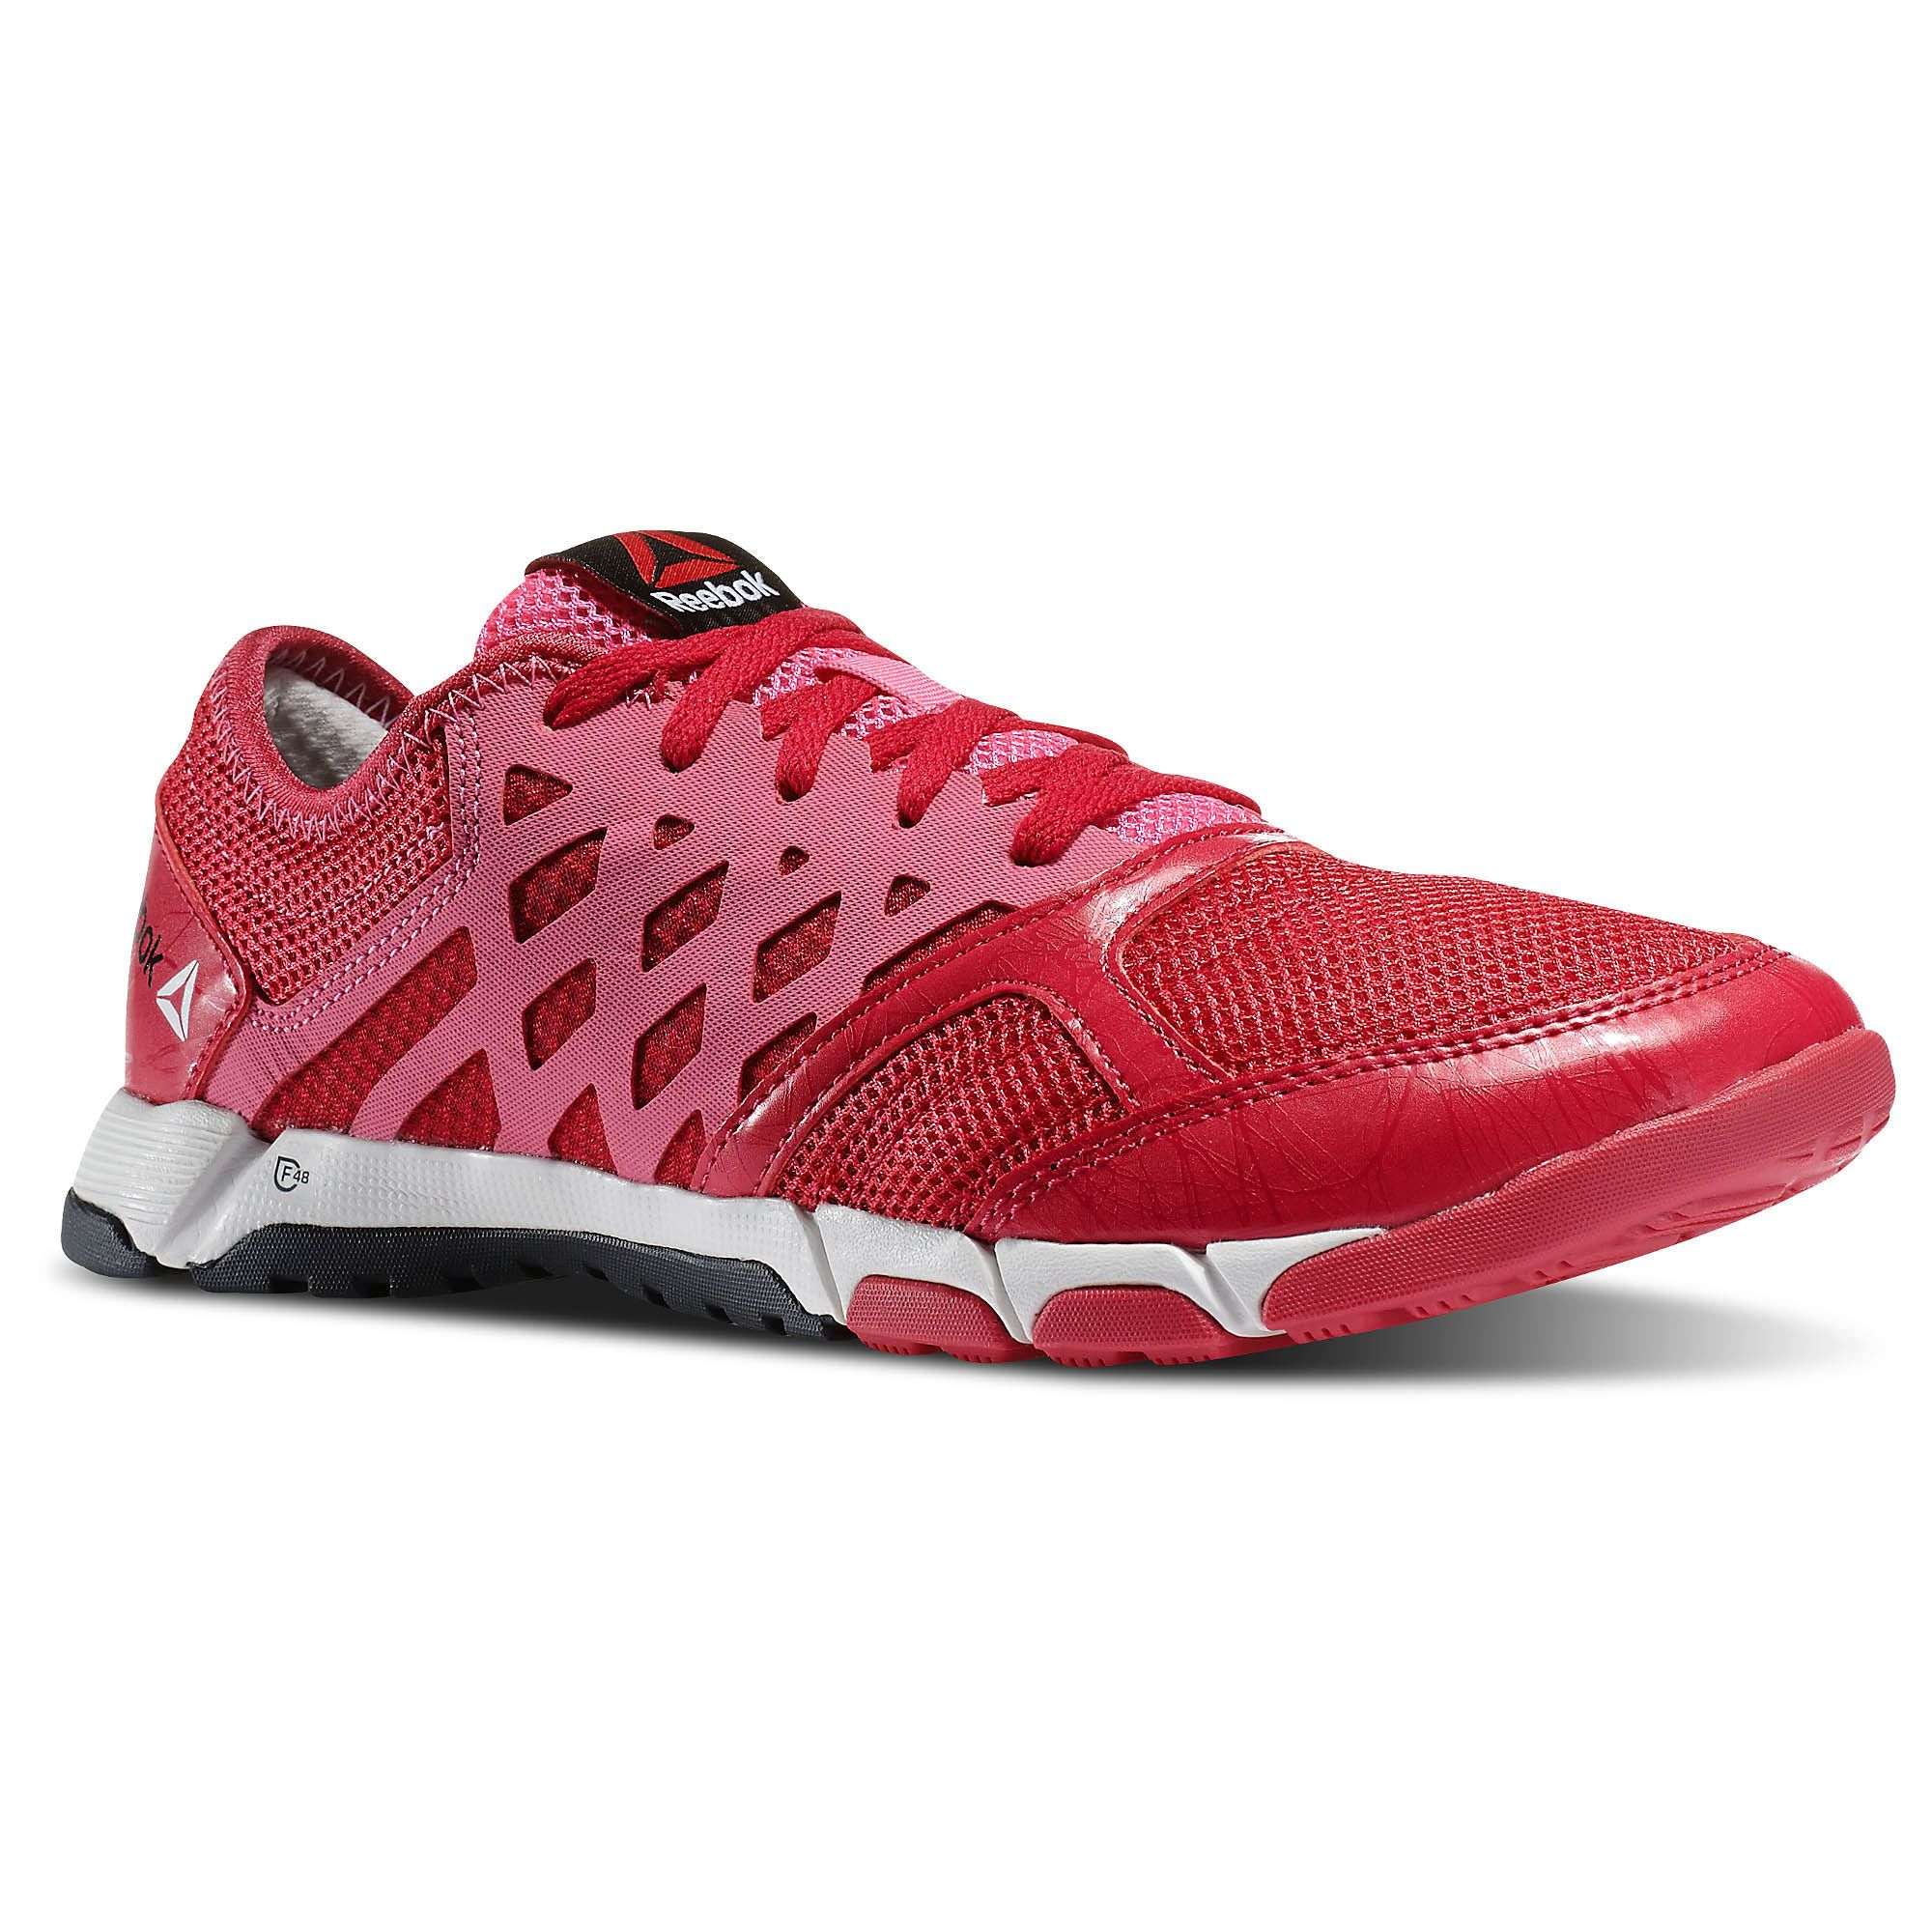 Reebok-running-shoes-and-sportsshoes-for-women (11)